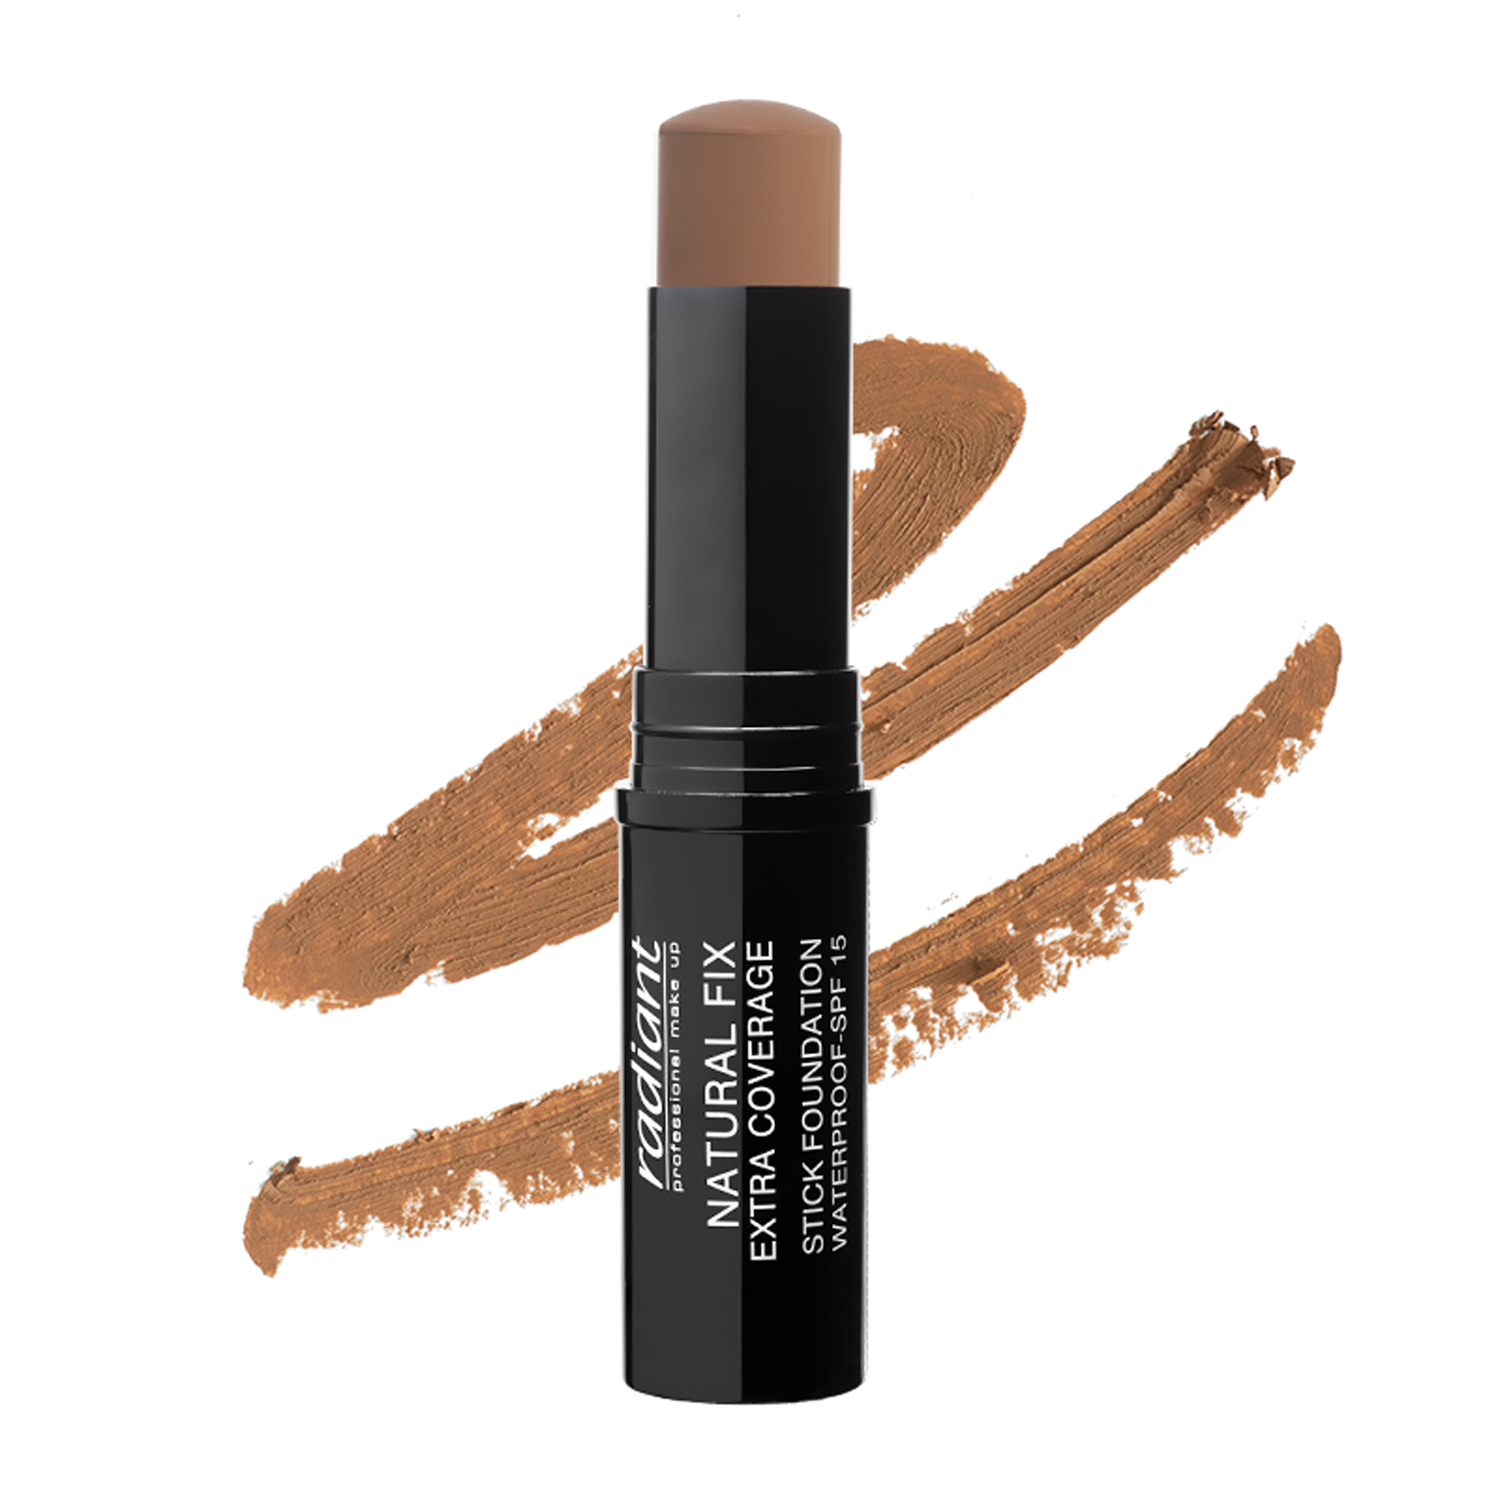 NATURAL FIX EXTRA COVERAGE STICK FOUNDATION  WATERPROOF SPF 15 (07 CINAMMON)